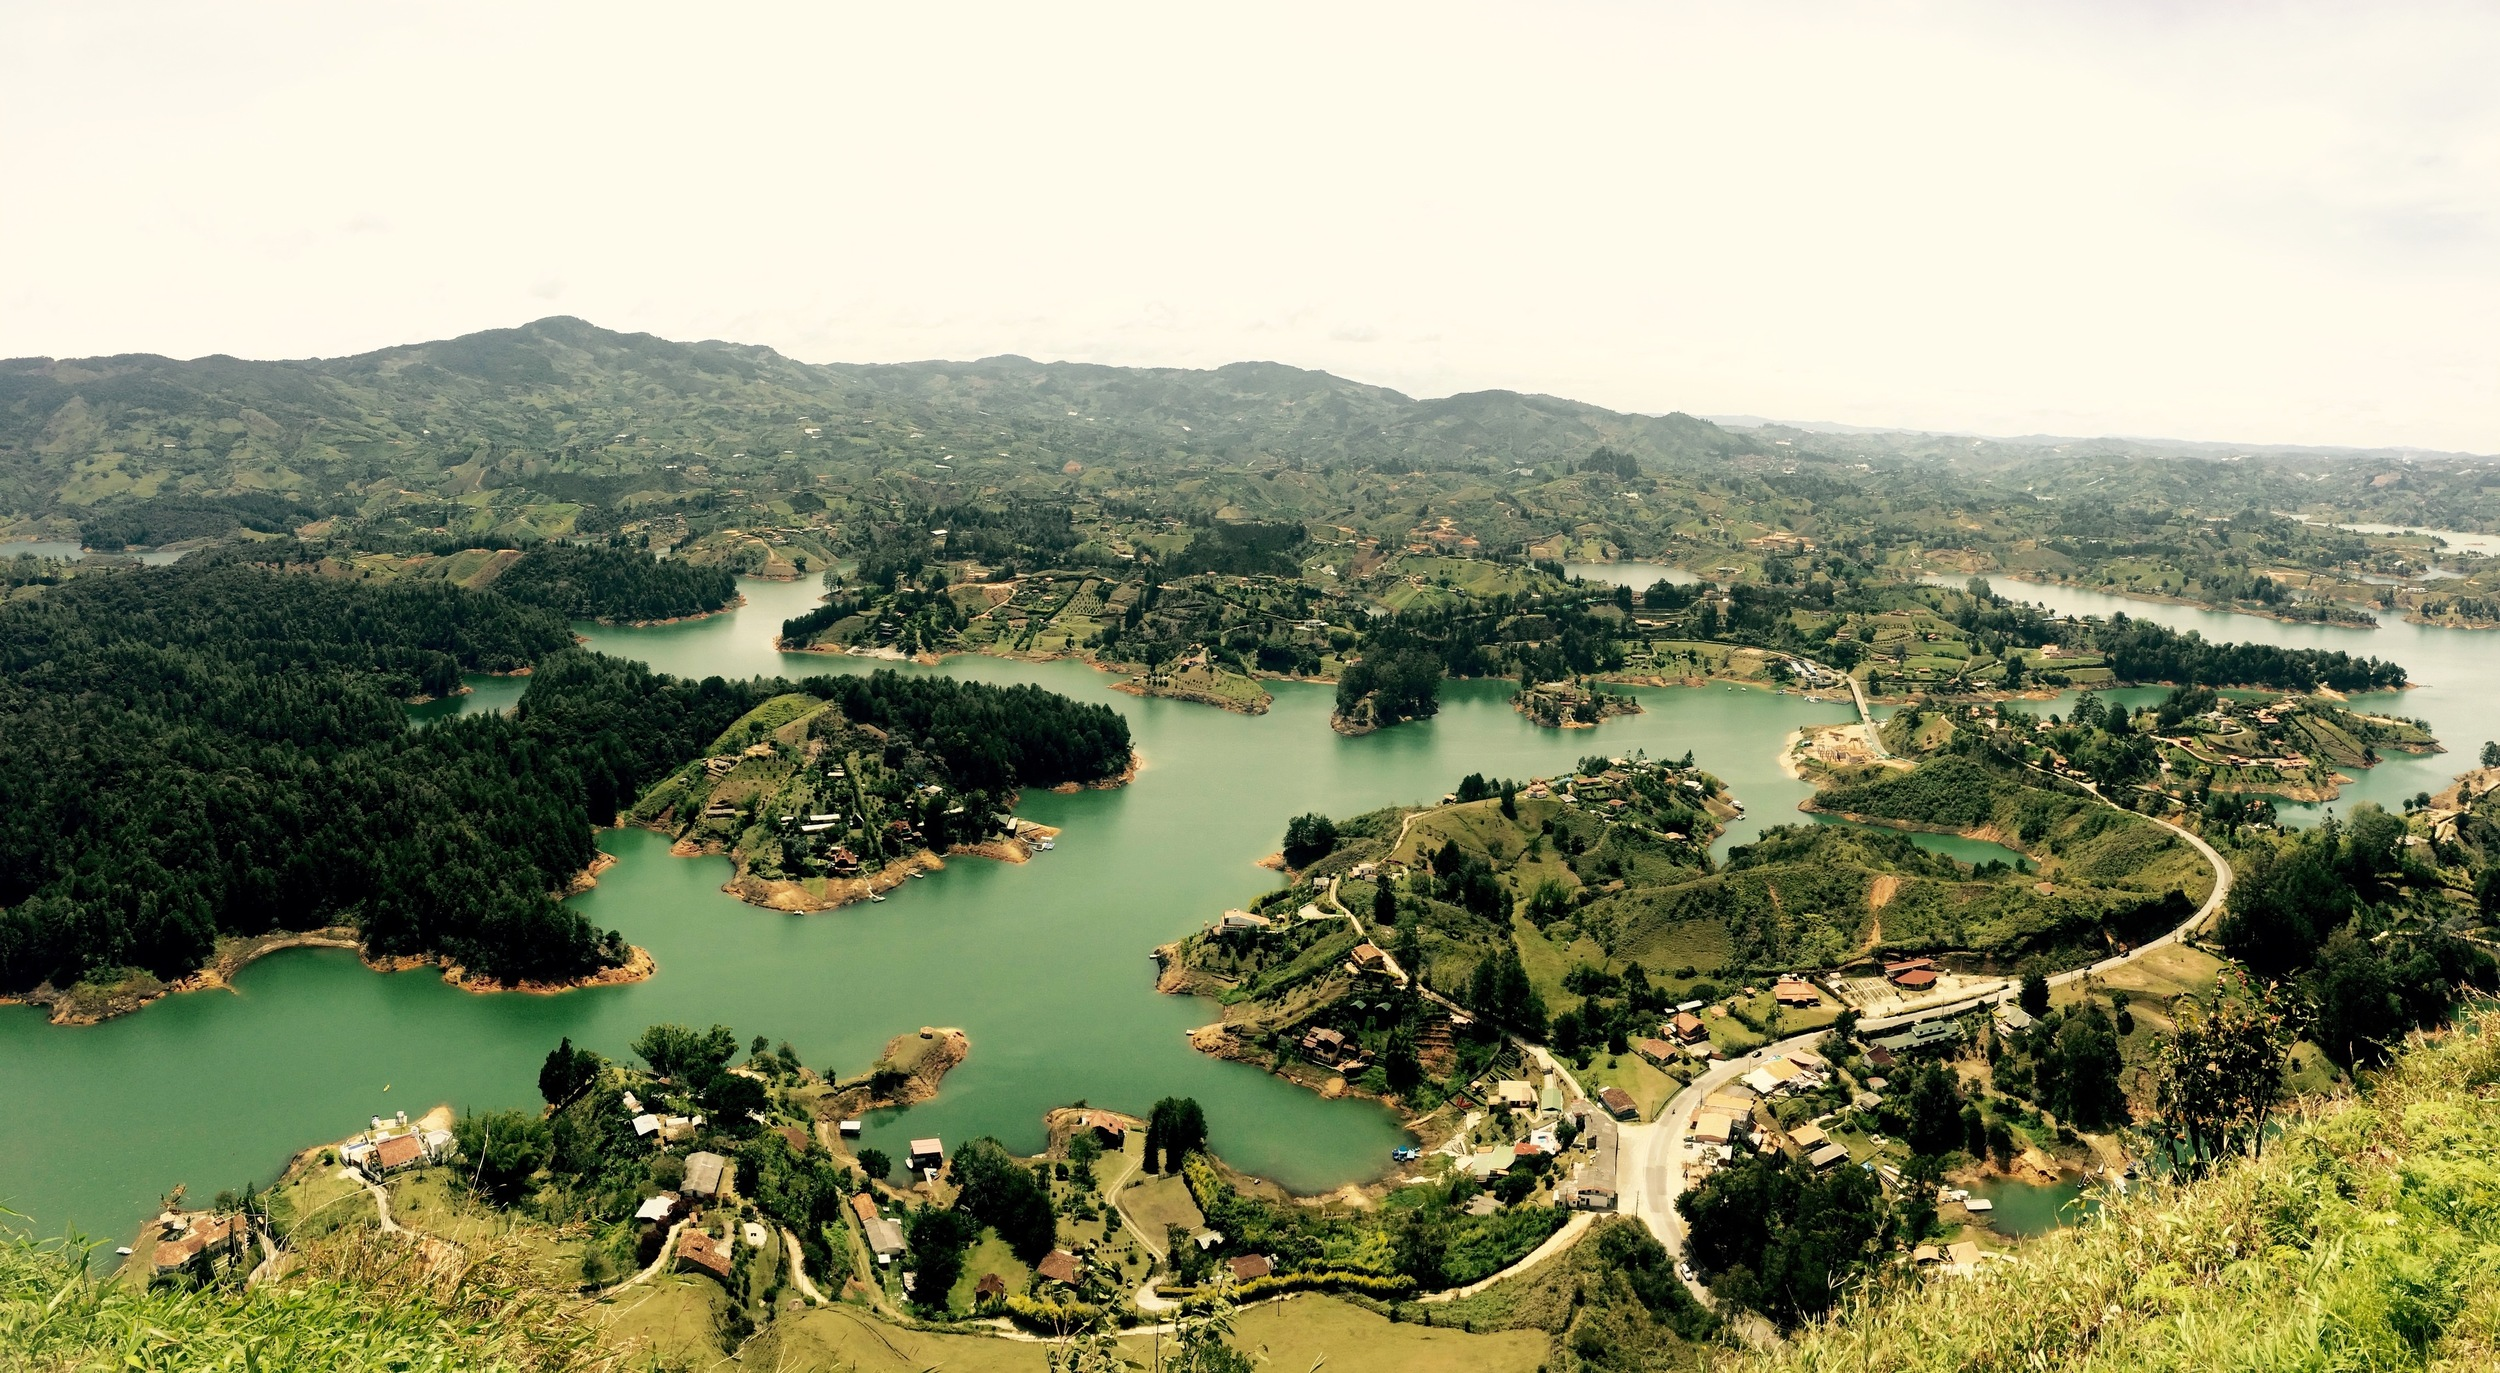 The view from the second tallest rock in the world, which can be found three hours from Medellín in the small town of Guatapé.